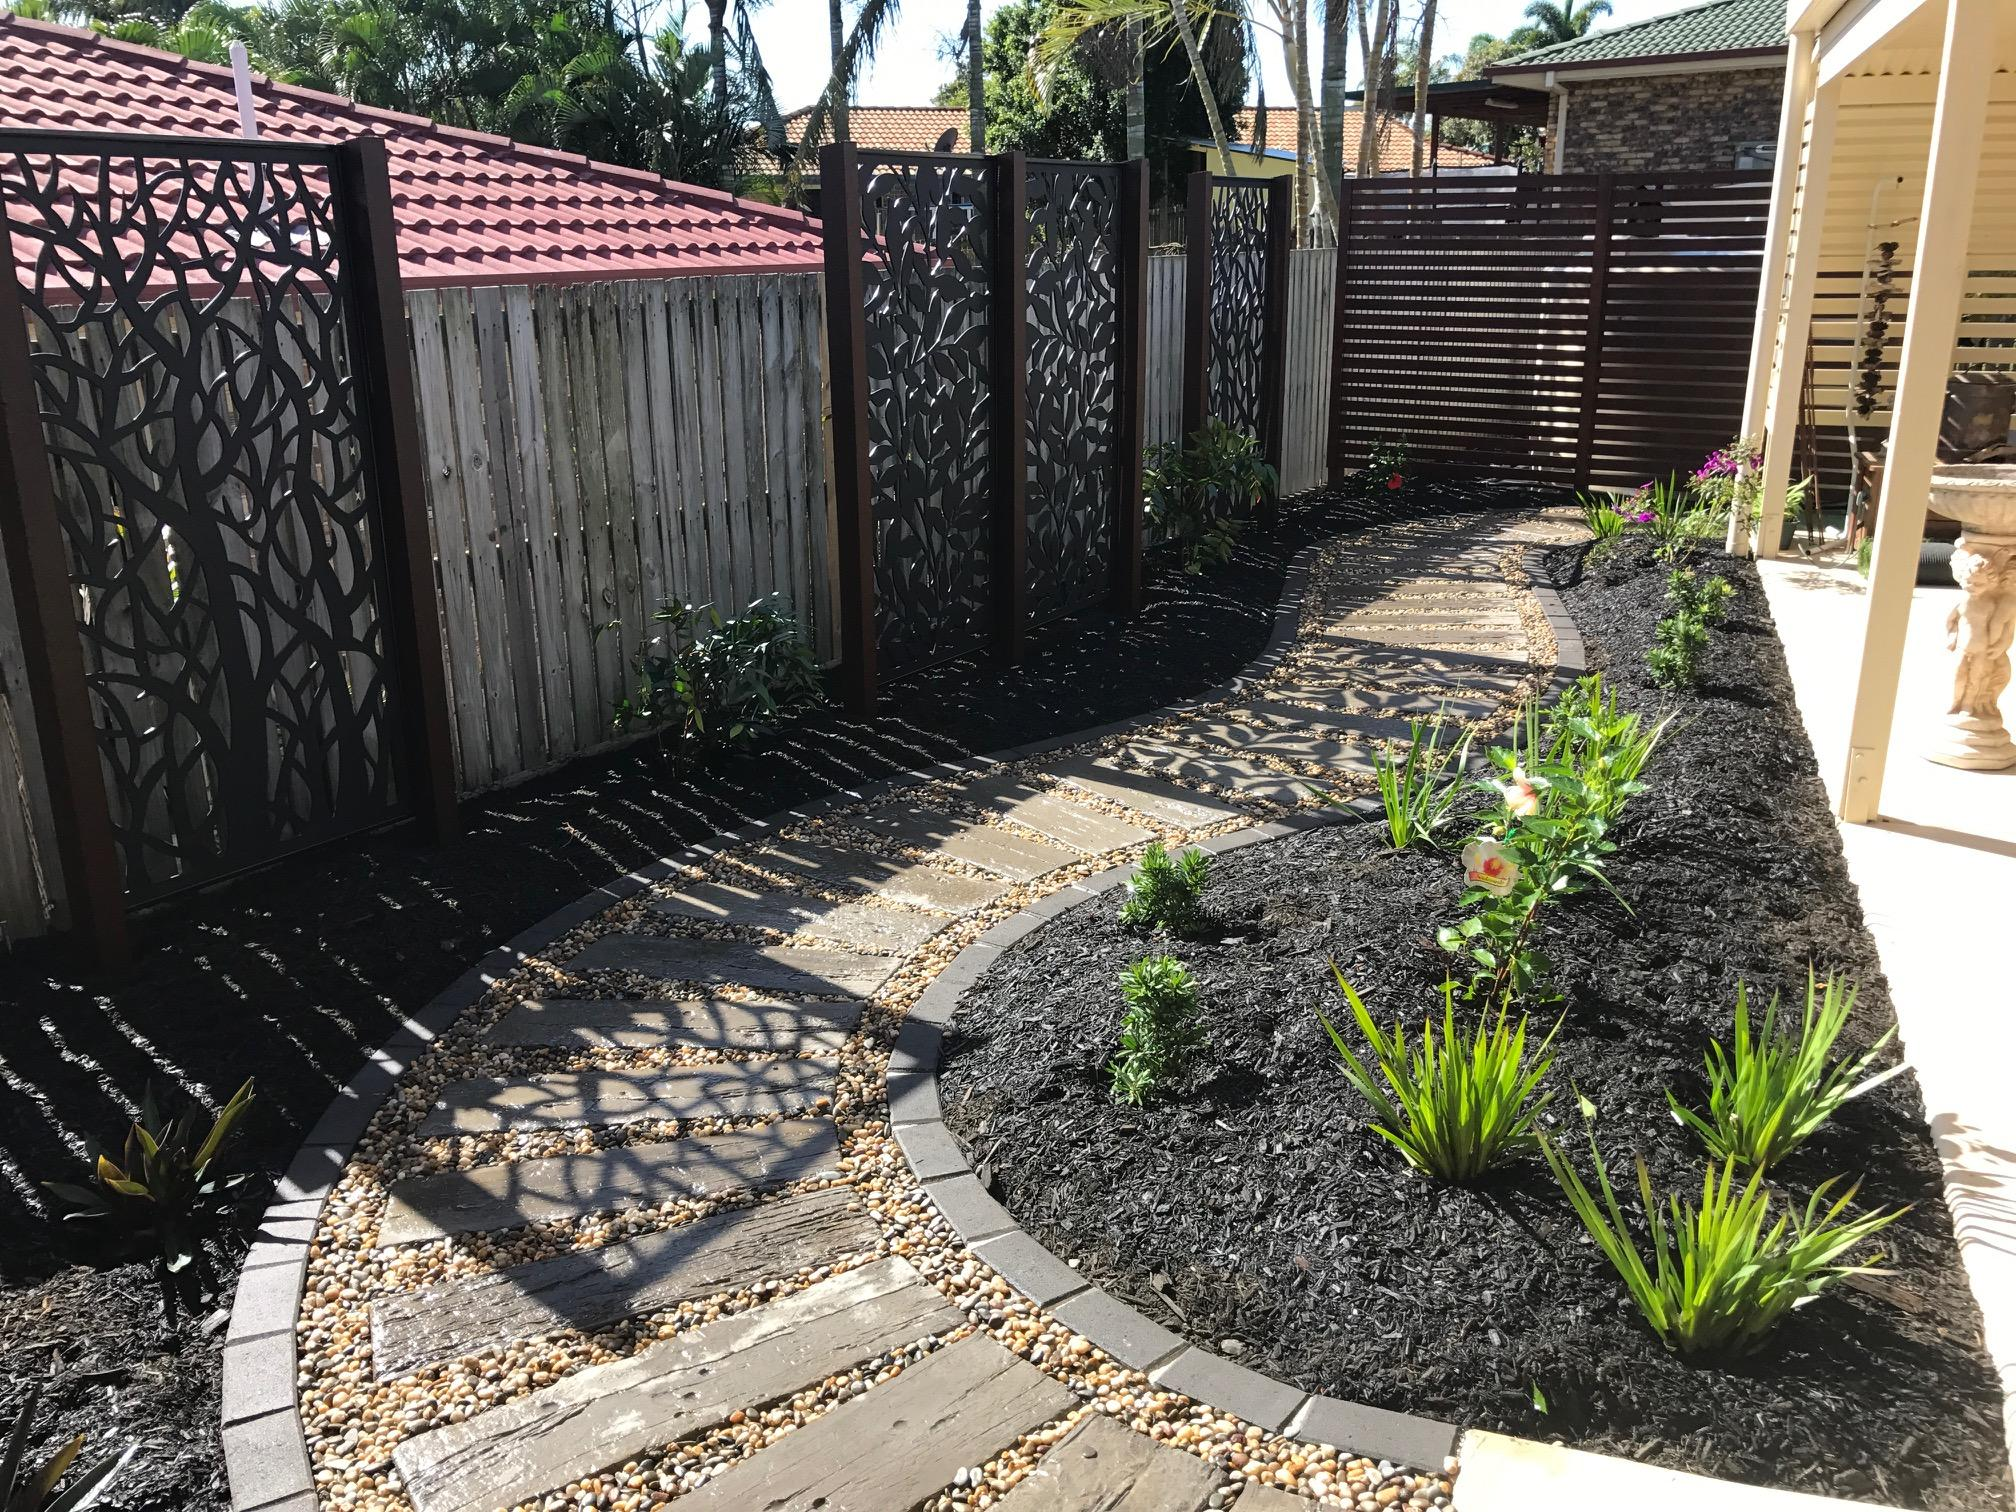 Naturescape landscaping Brisbane